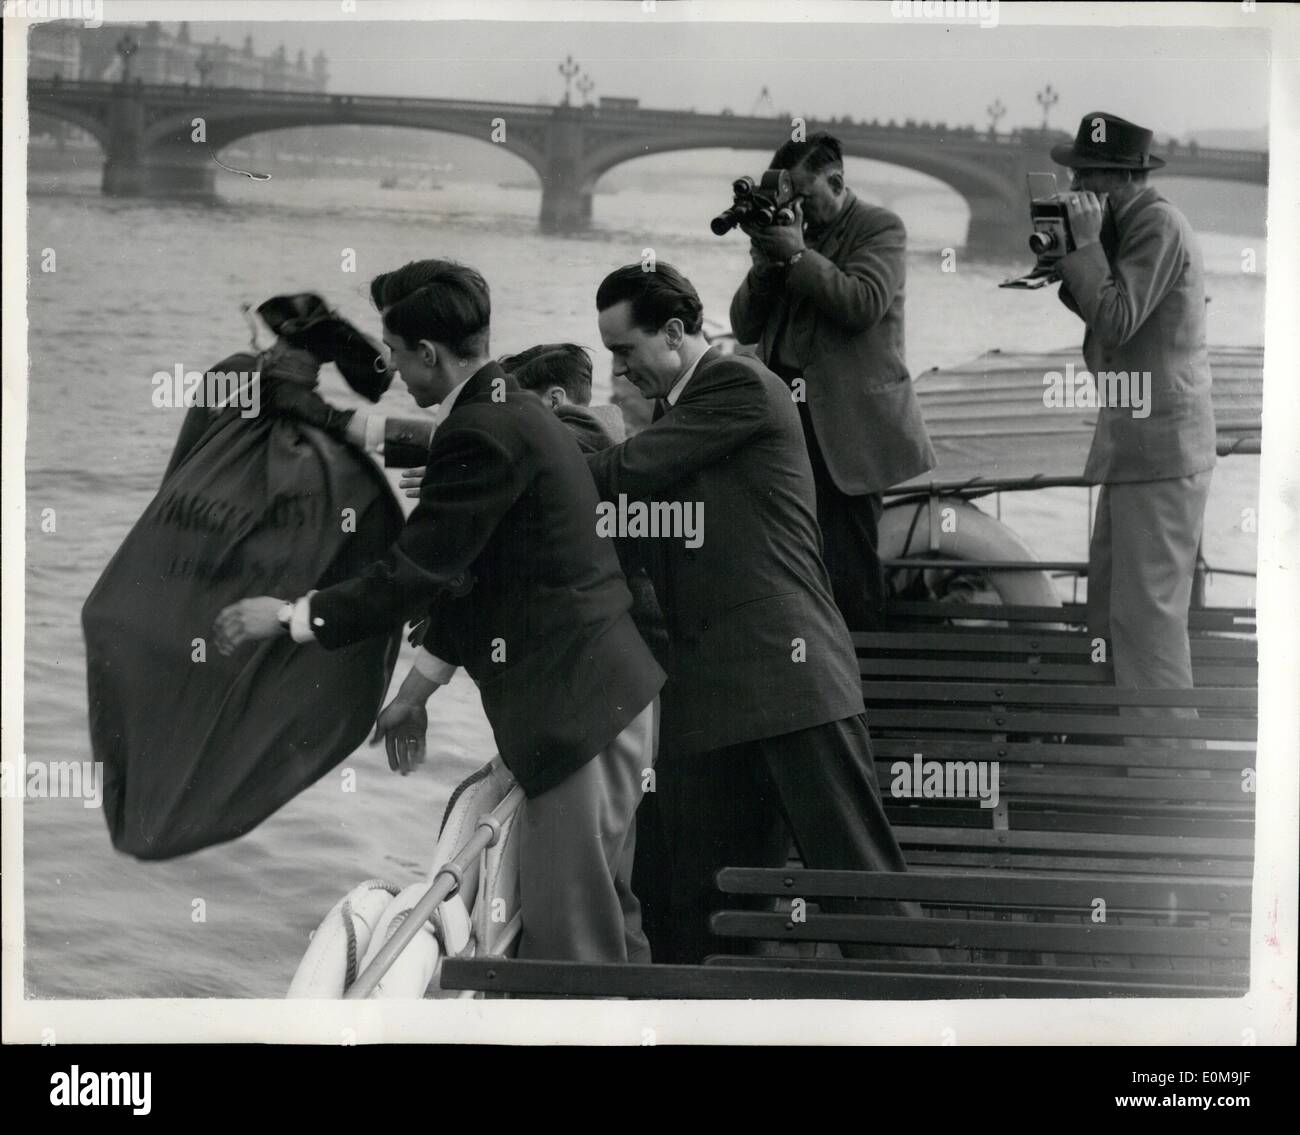 Apr. 04, 1954 - Sally Was Very Worried - But Nick Made It.... ''Escape'' In River Thames: Nick Jansen went to the River Thames by Westminster Bridge during thr week-end to demonstrate his prowess in escaping.. He allowed his assistants to handcuff him - put him in a mailbag and drop him in the River.. Sally Chinnon his finances was very worried - until Nick popped up - free - at last.. Keystone Photo Shows:- Over the side goes Nick Jansen - in his tied up mailbag.. It was not very long before her turned up again - a free man. - Stock Image